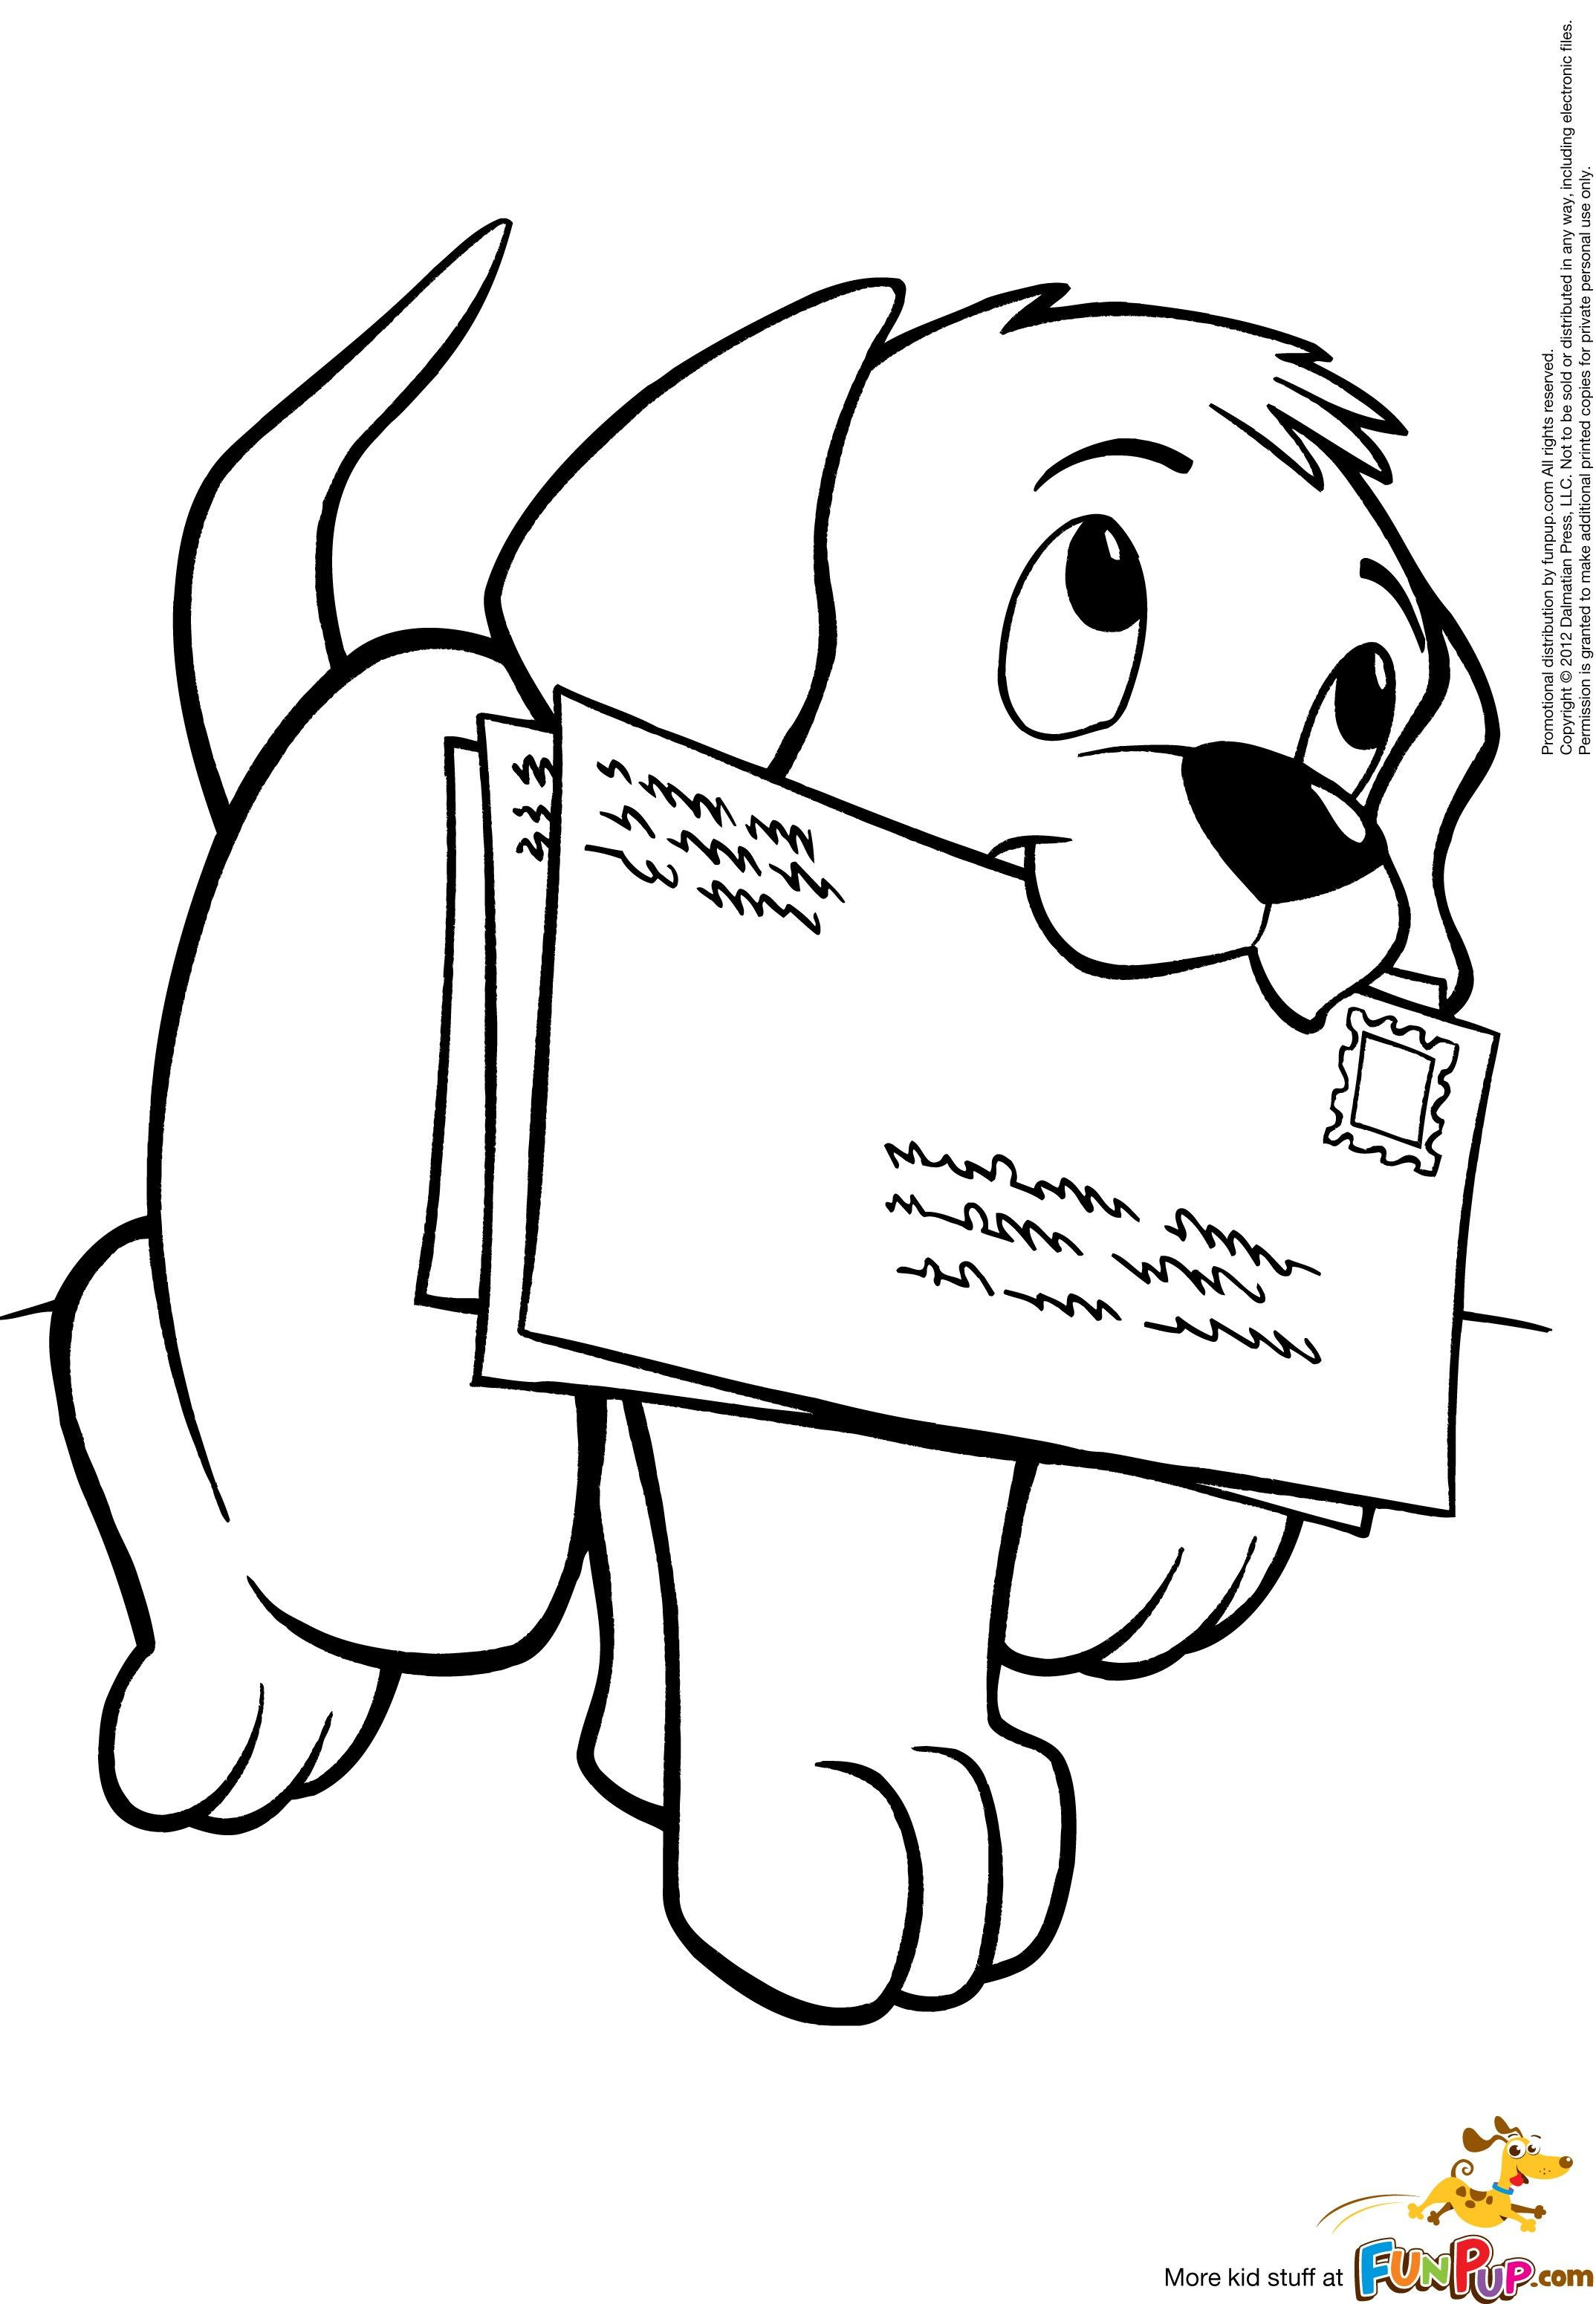 Best ideas about Christmas Dog Coloring Pages For Kids . Save or Pin Free Printable Coloring Pages Printables Now.